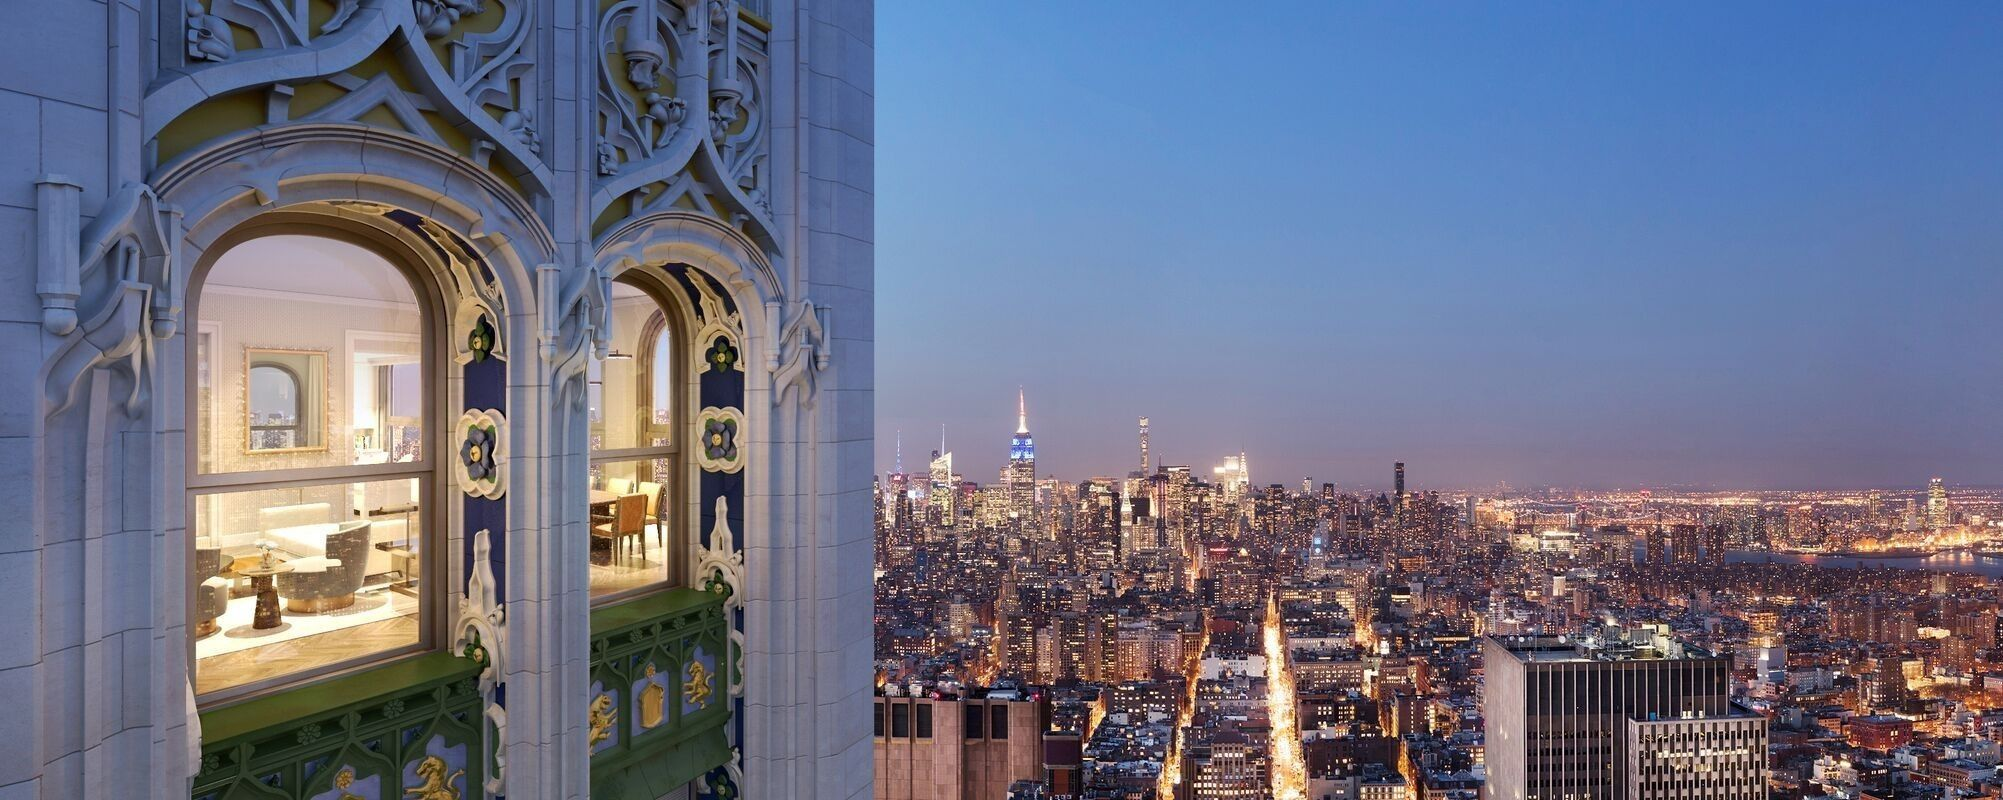 Building The Woolworth Tower Residences